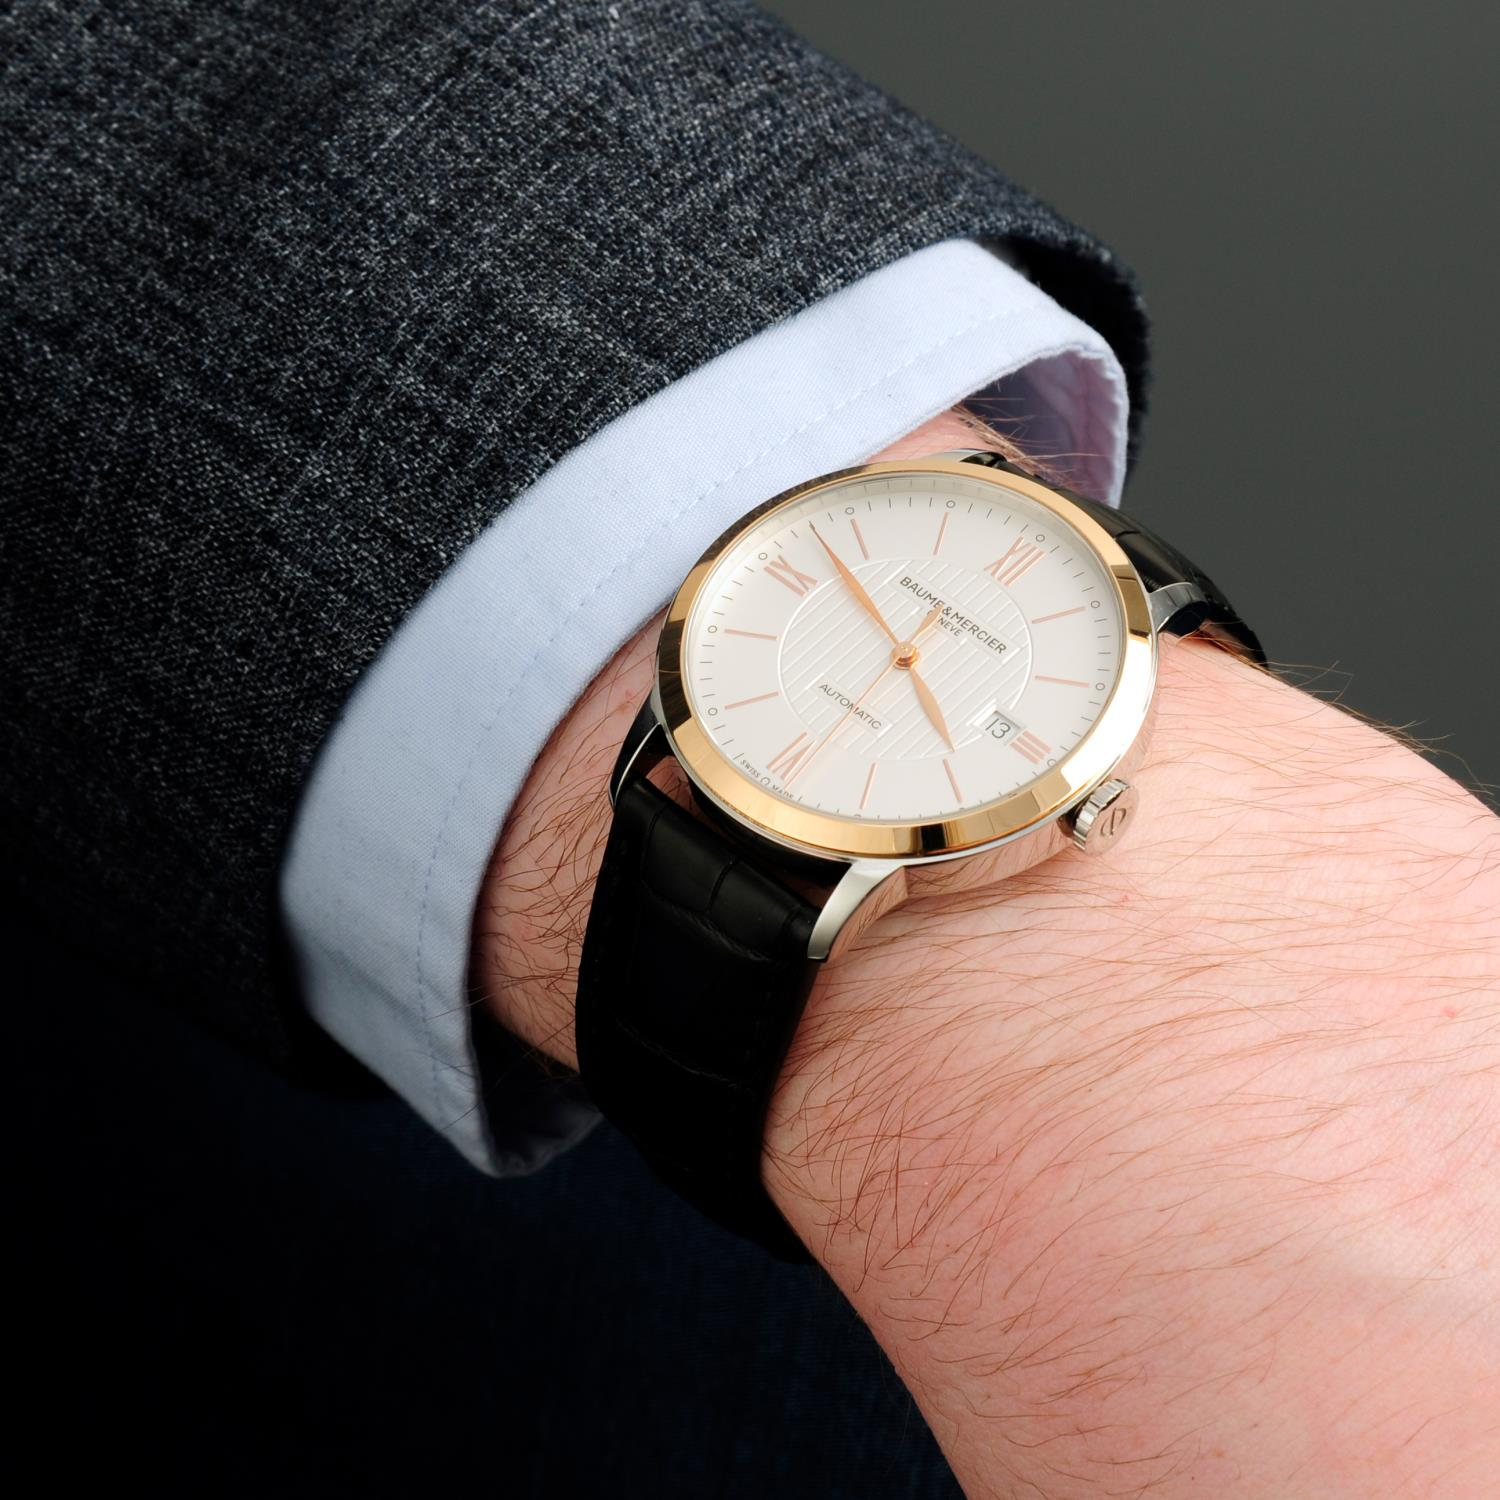 BAUME & MERCIER - a stainless steel Classima wrist watch. - Image 3 of 6